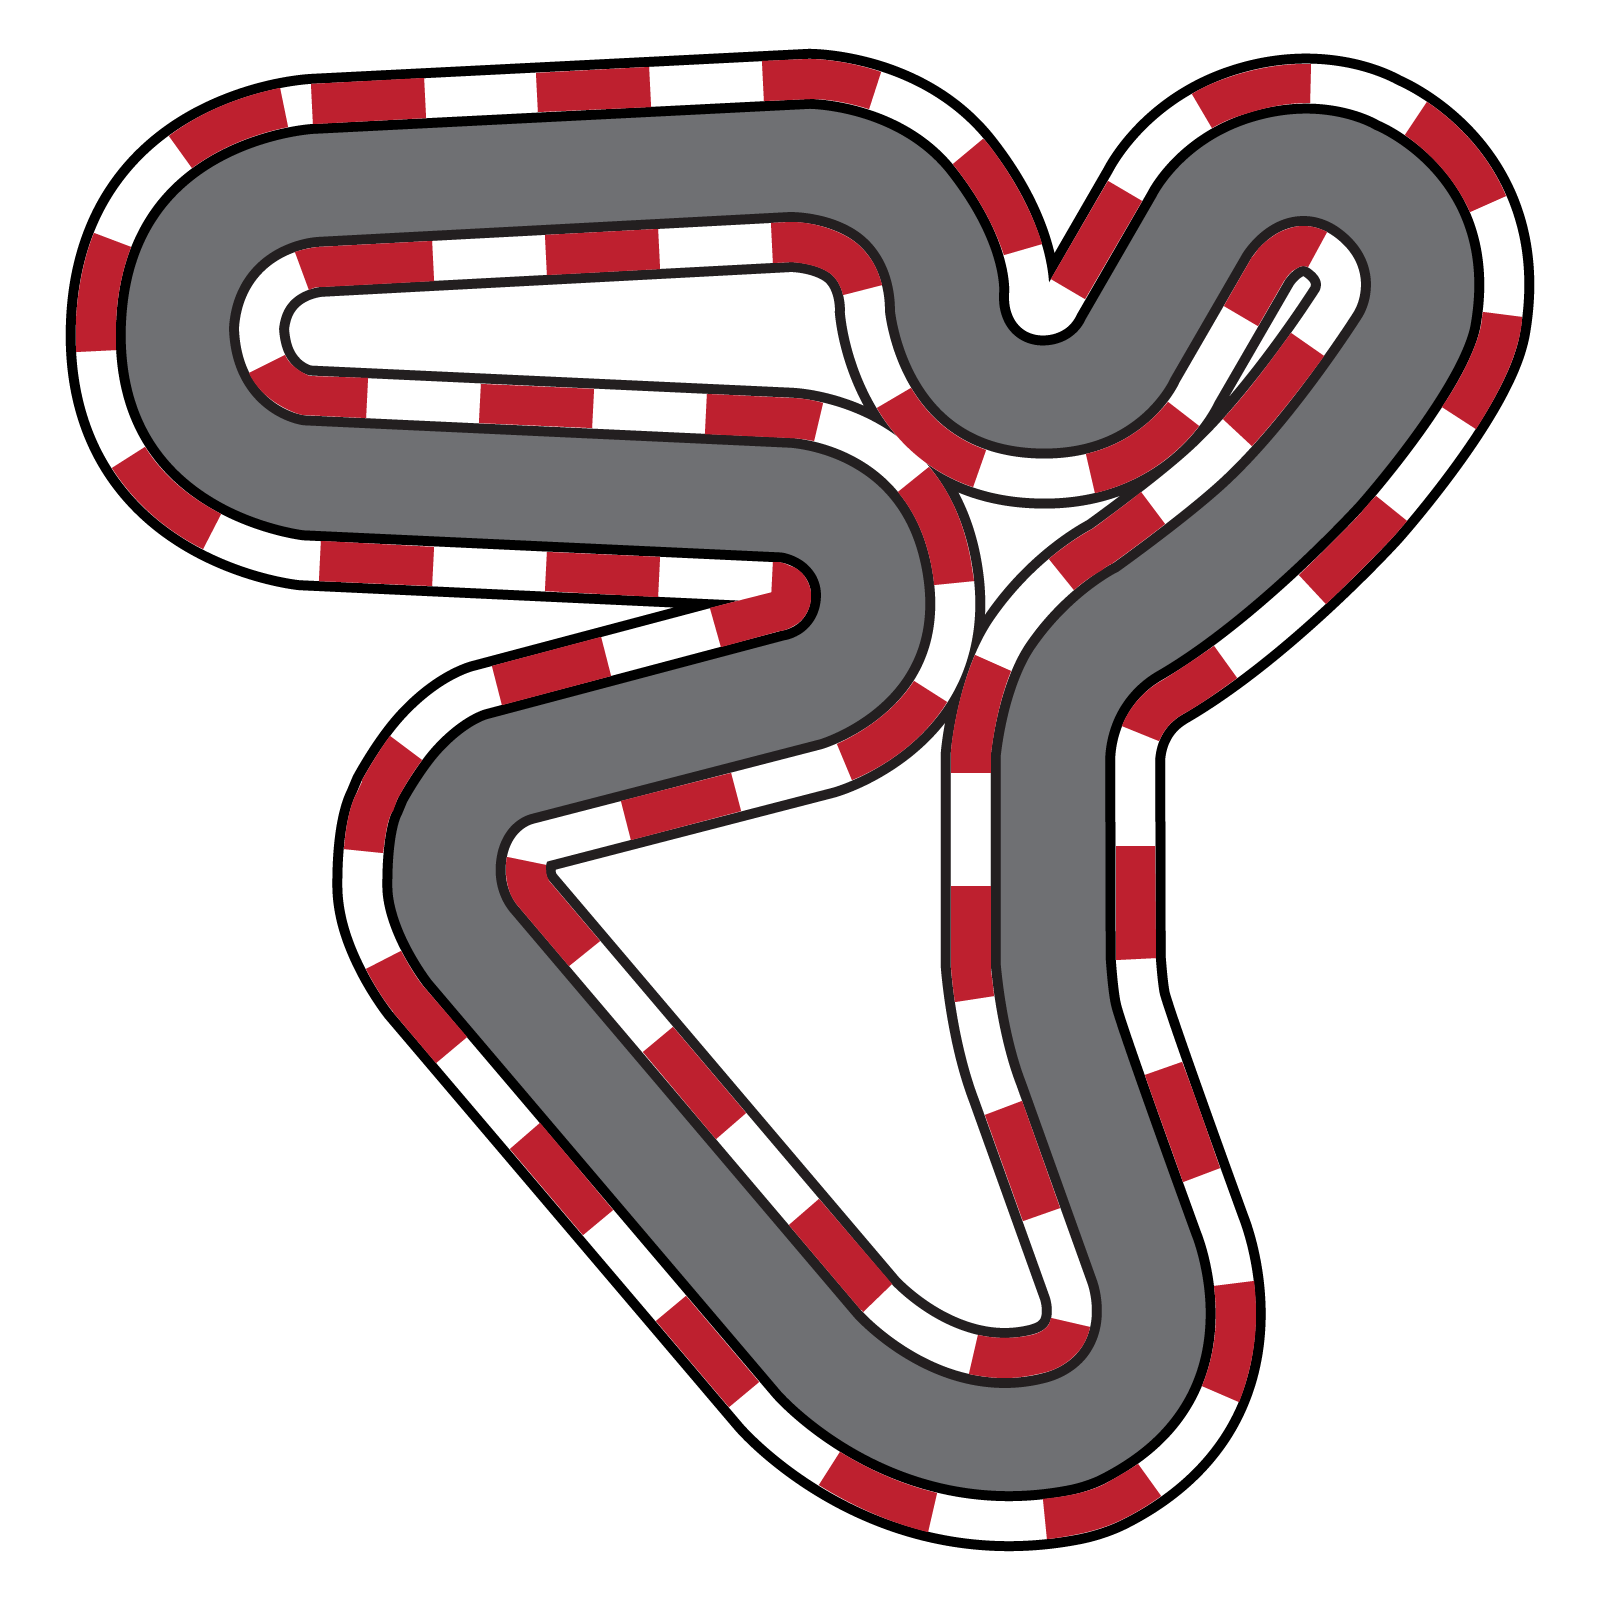 Clipart car racetrack.  collection of racing